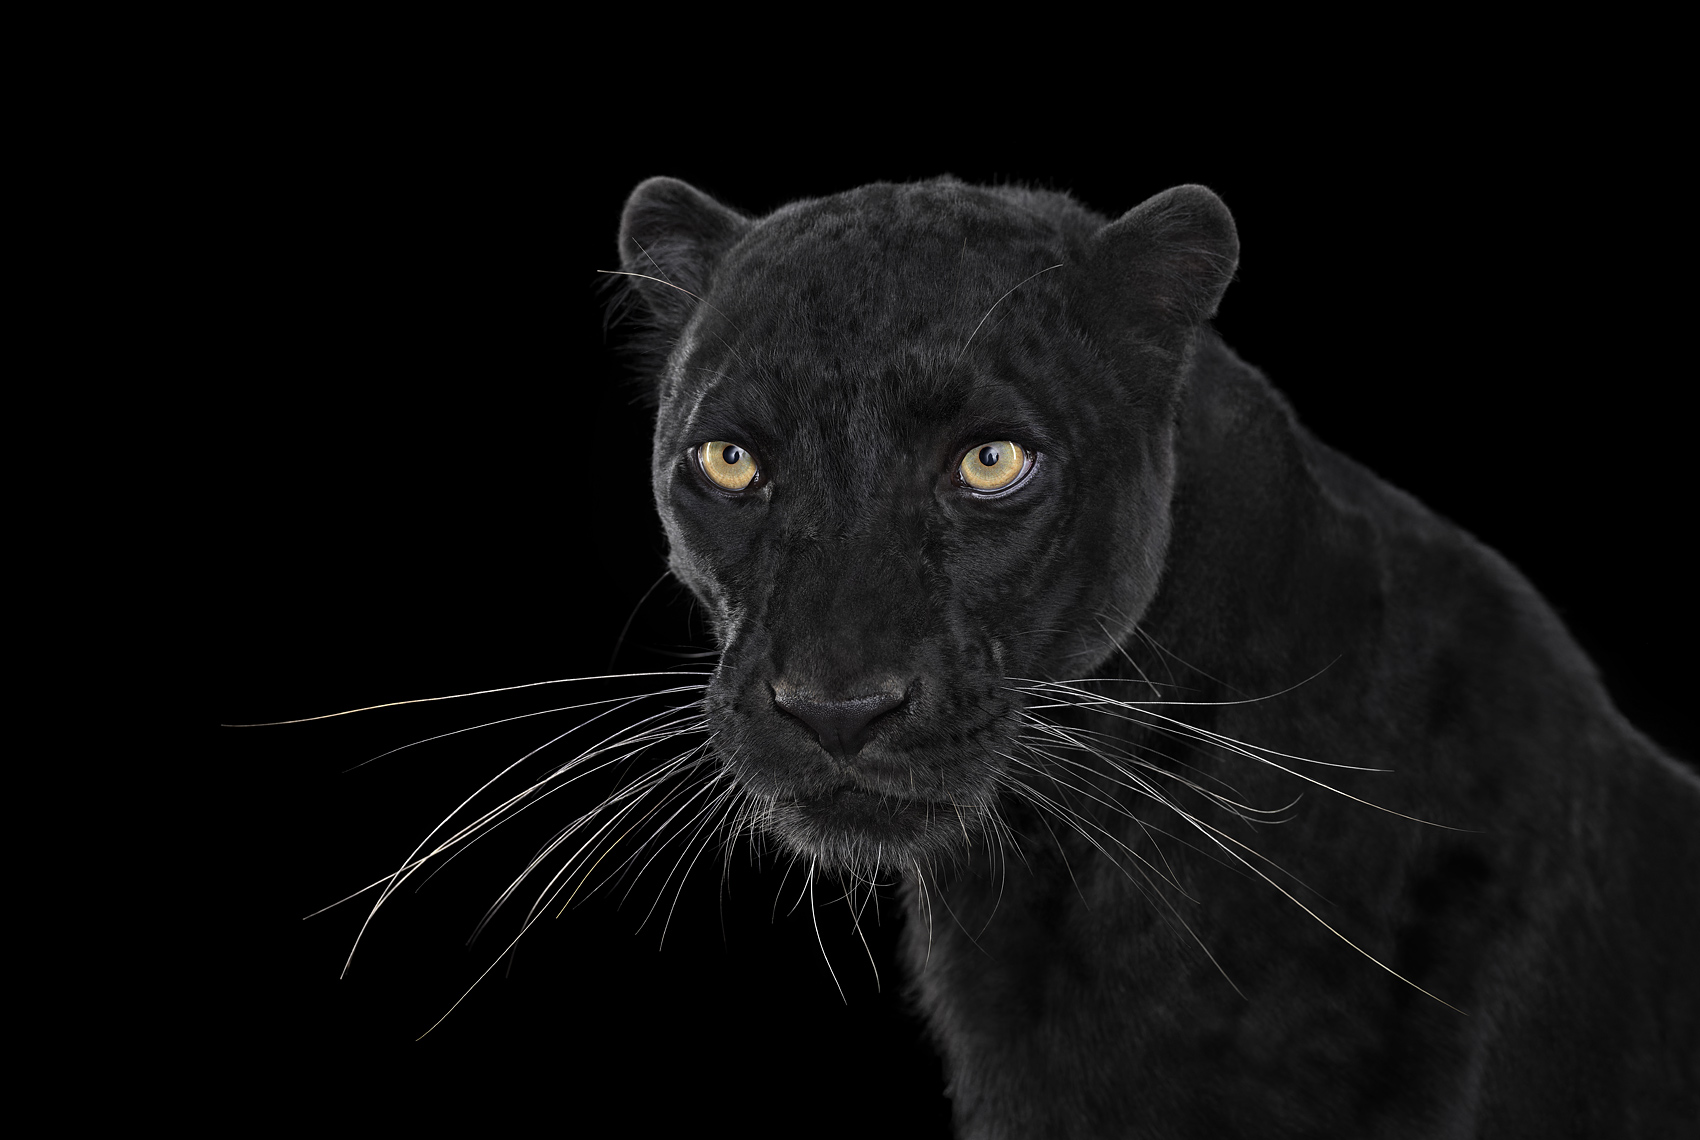 Black panther frontal studio portrait by animal photographer Brad Wilson